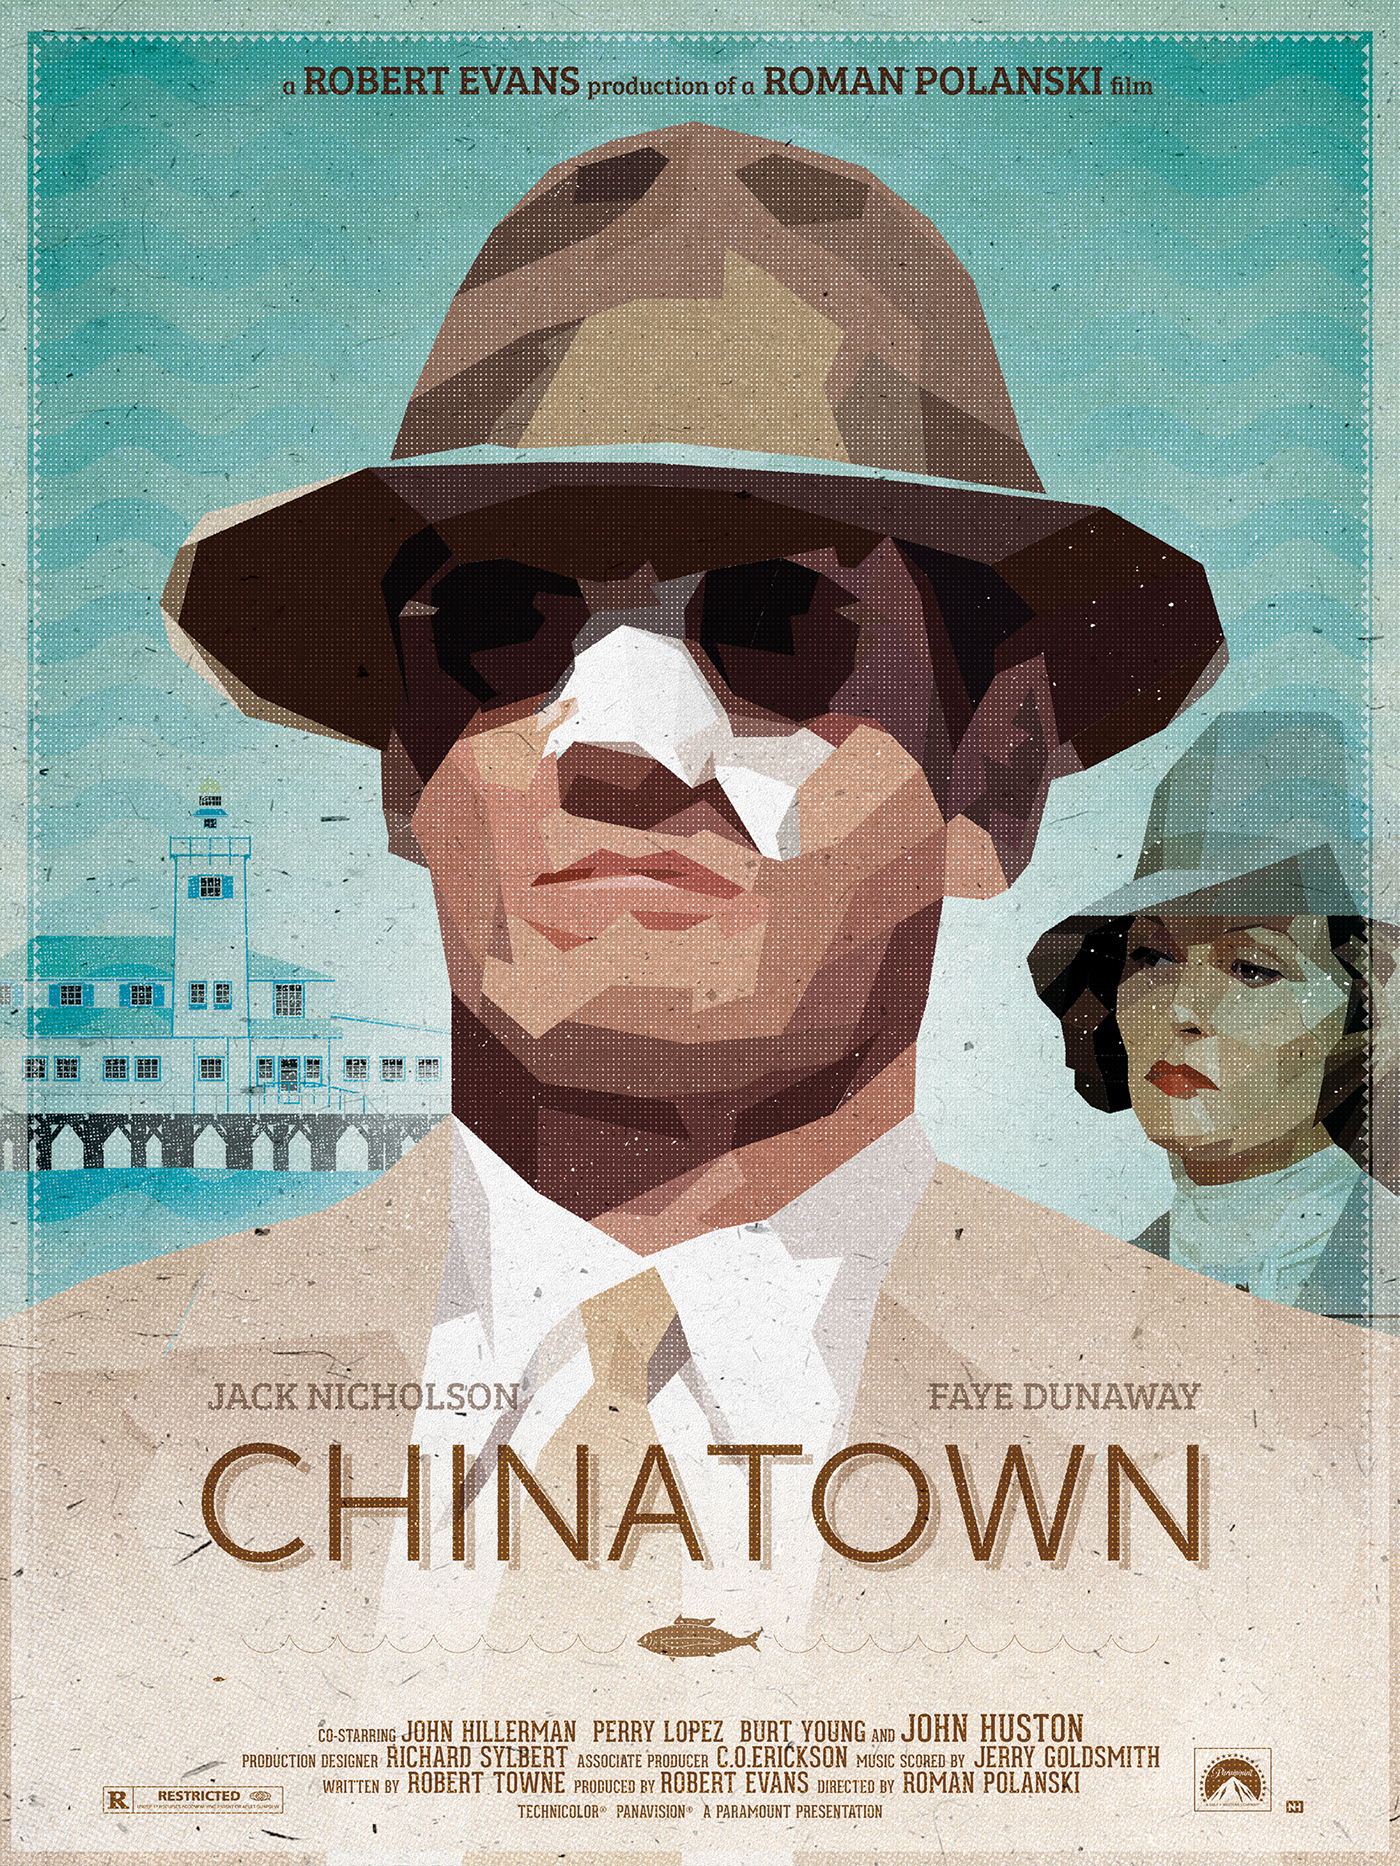 an analysis of chinatown a film by roman polanski Polanski returned to hollywood in 1973 to direct chinatown (1974) for paramount picturesthe film is widely considered to be one of the finest american mystery crime movies, inspired by the real-life california water wars, a series of disputes over southern california water at the beginning of the 20th century.